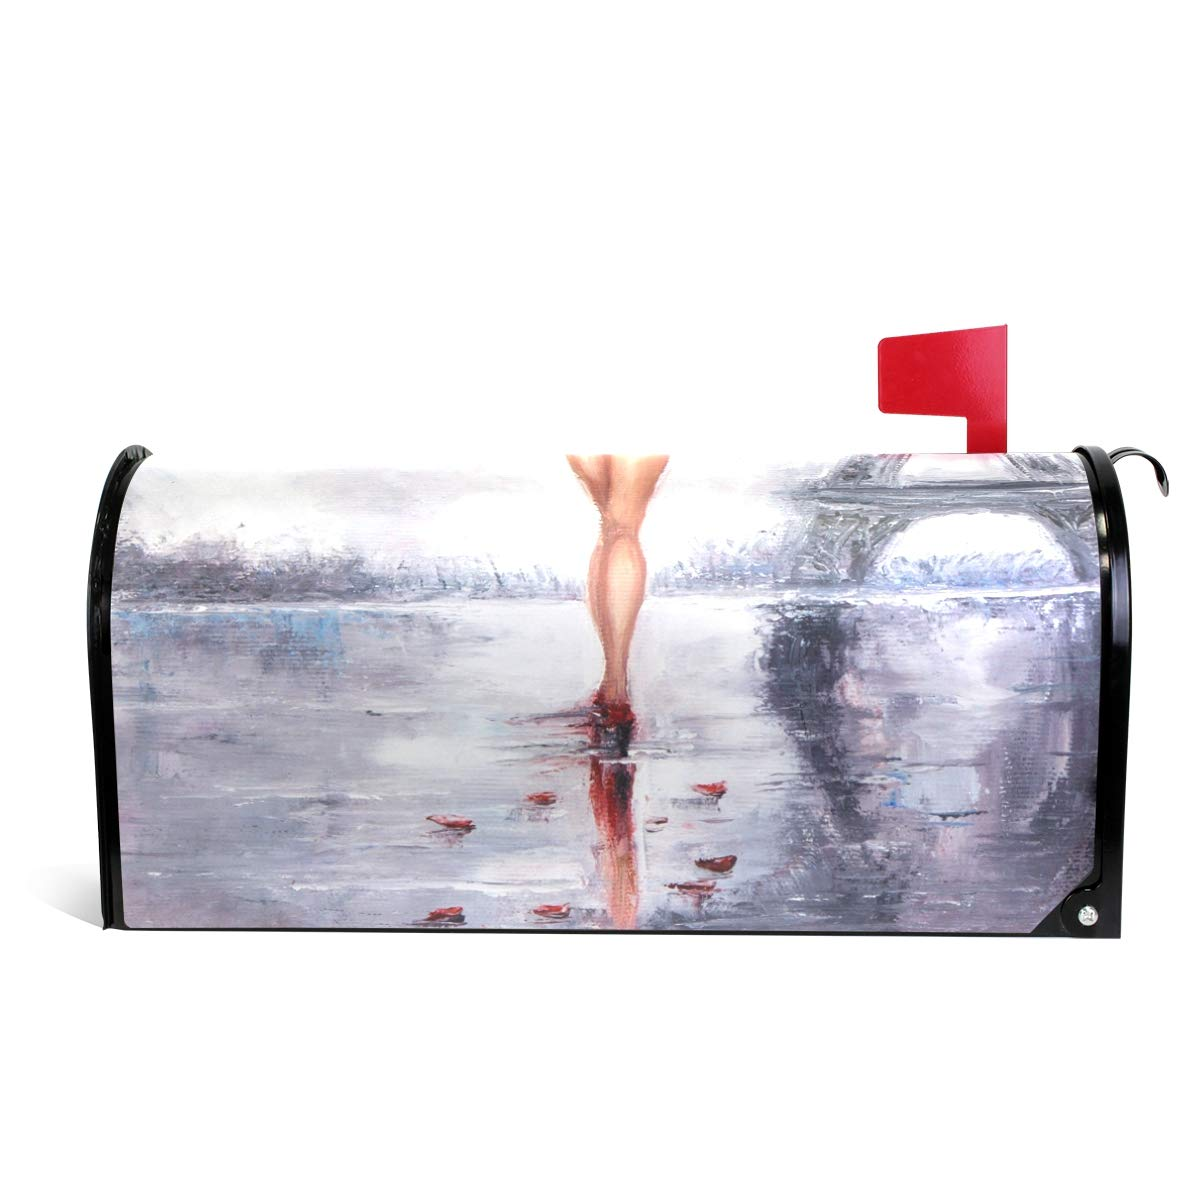 LORVIES Oil Painting Woman Paris Magnetic Mailbox Cover Oversized 25.5 x 18 Inch by LORVIES